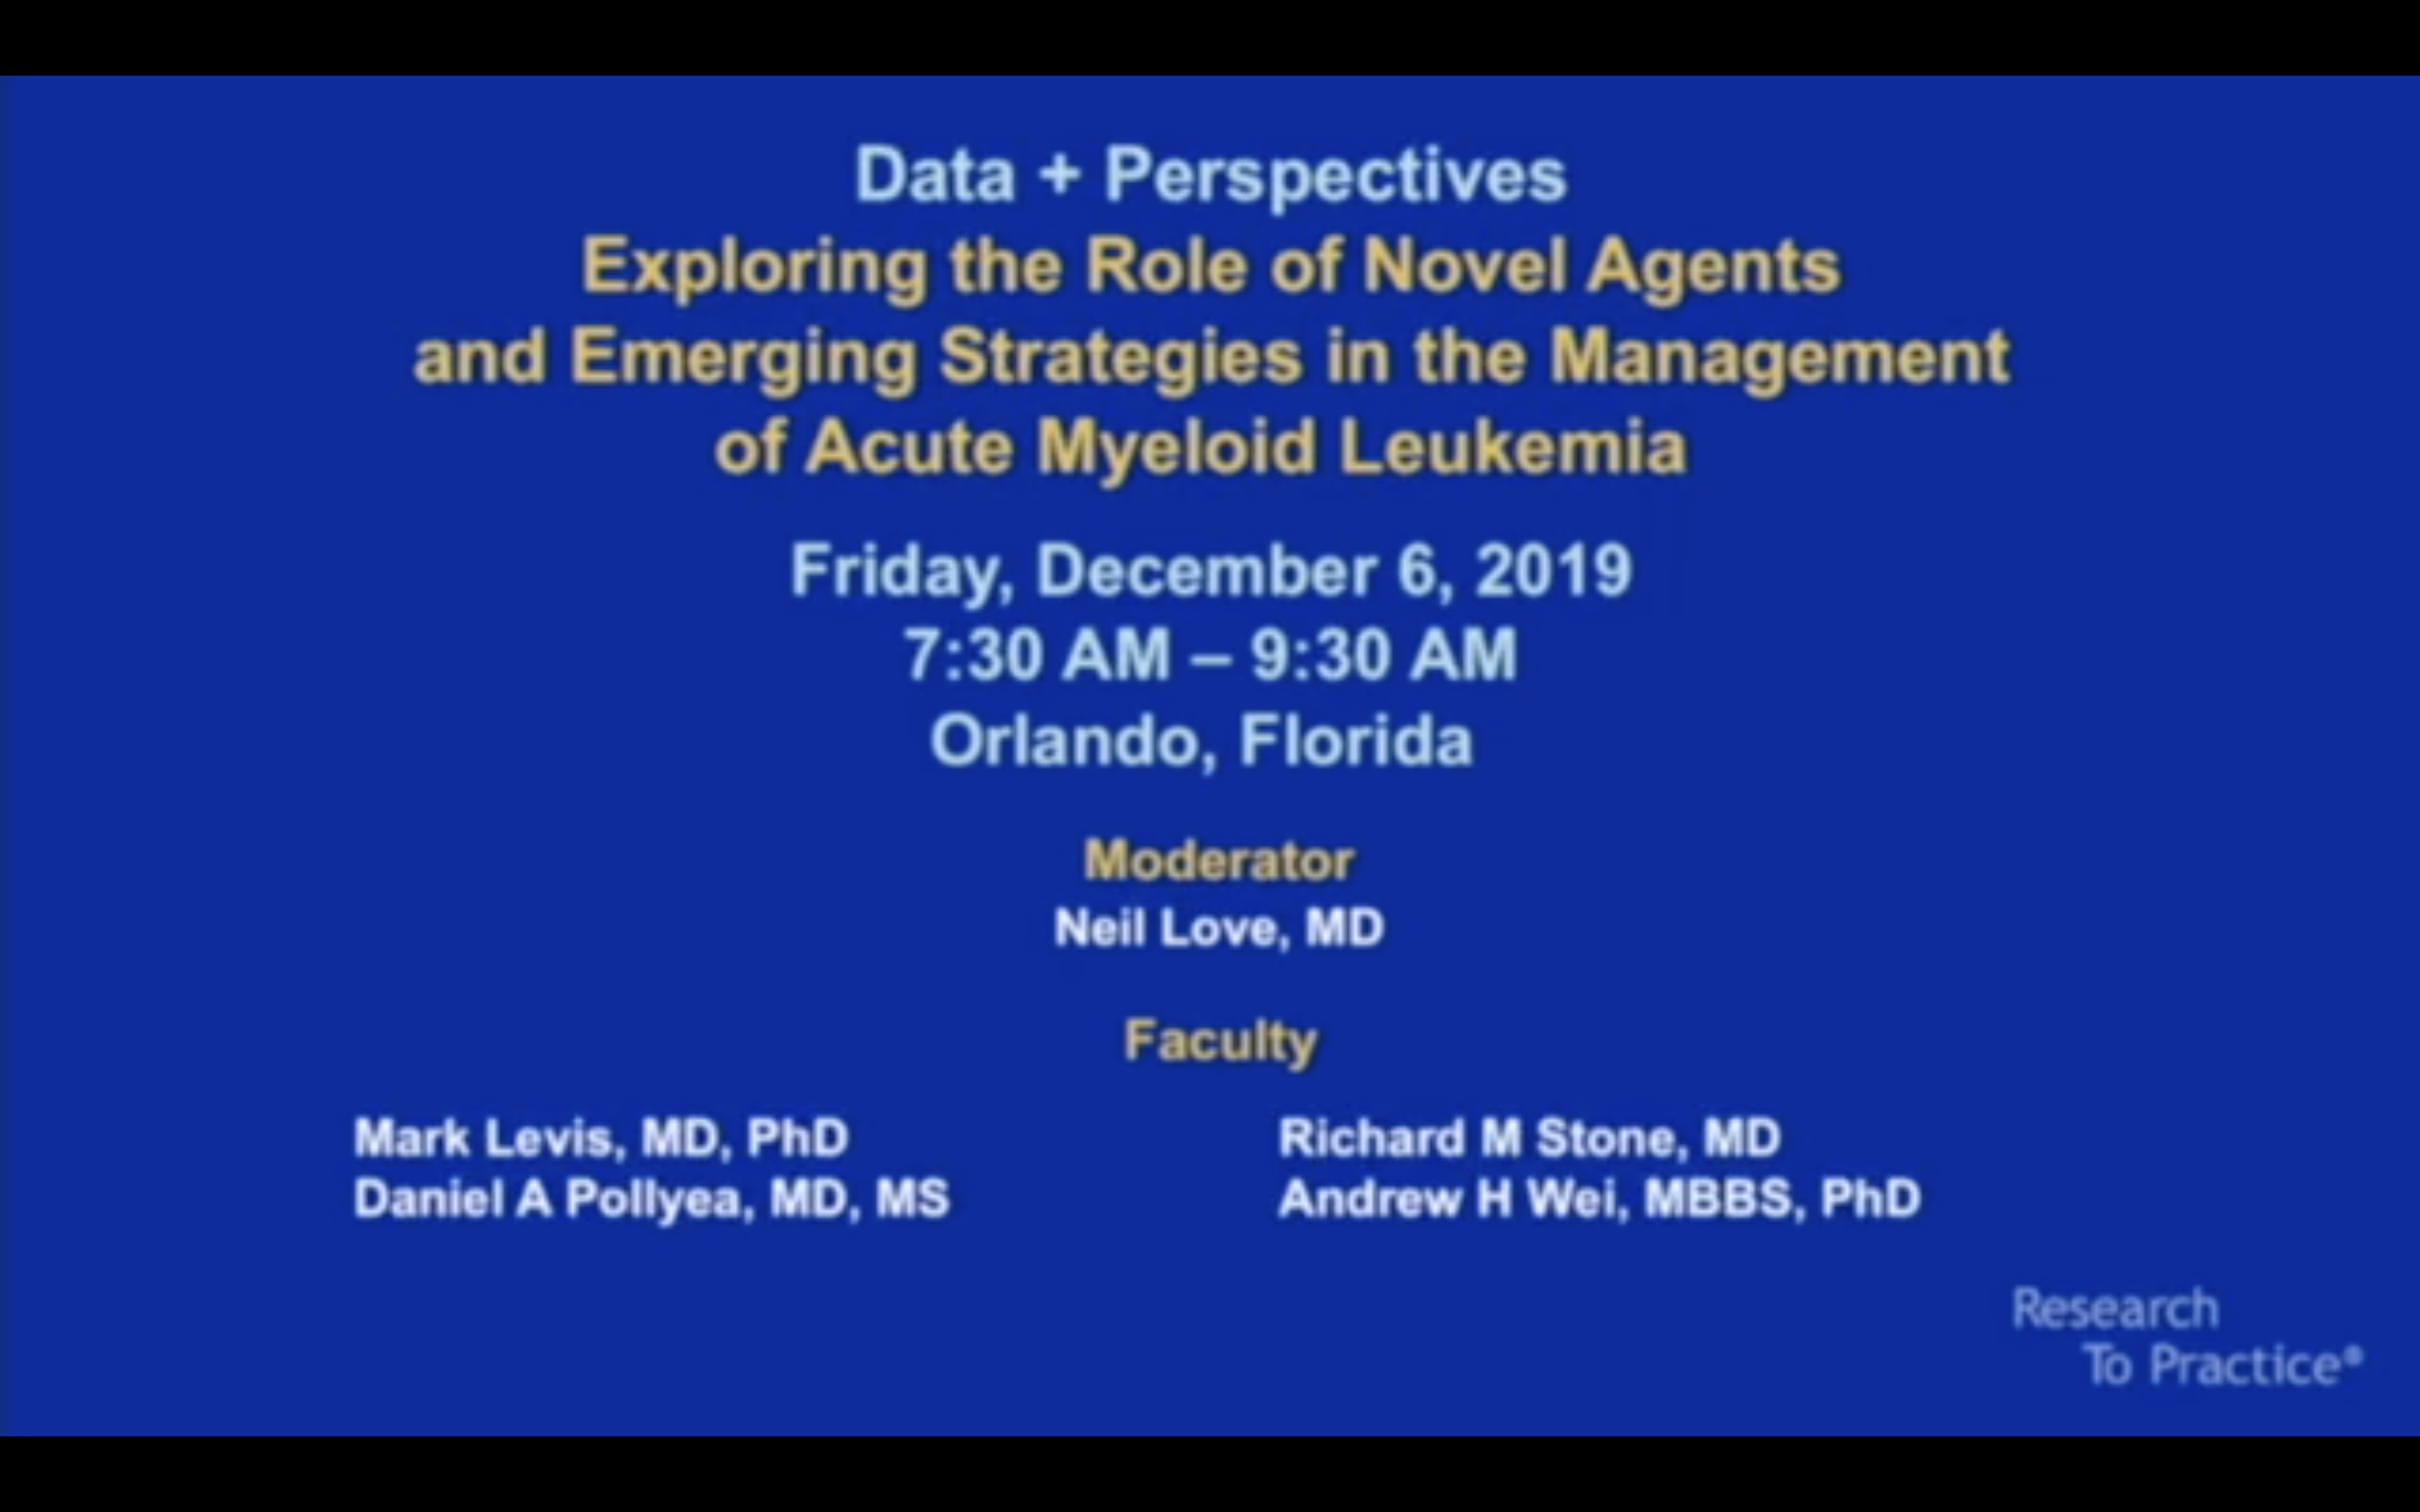 Artwork for AML | Data + Perspectives: Exploring the Role of Novel Agents and Emerging Strategies in the Management of Acute Myeloid Leukemia